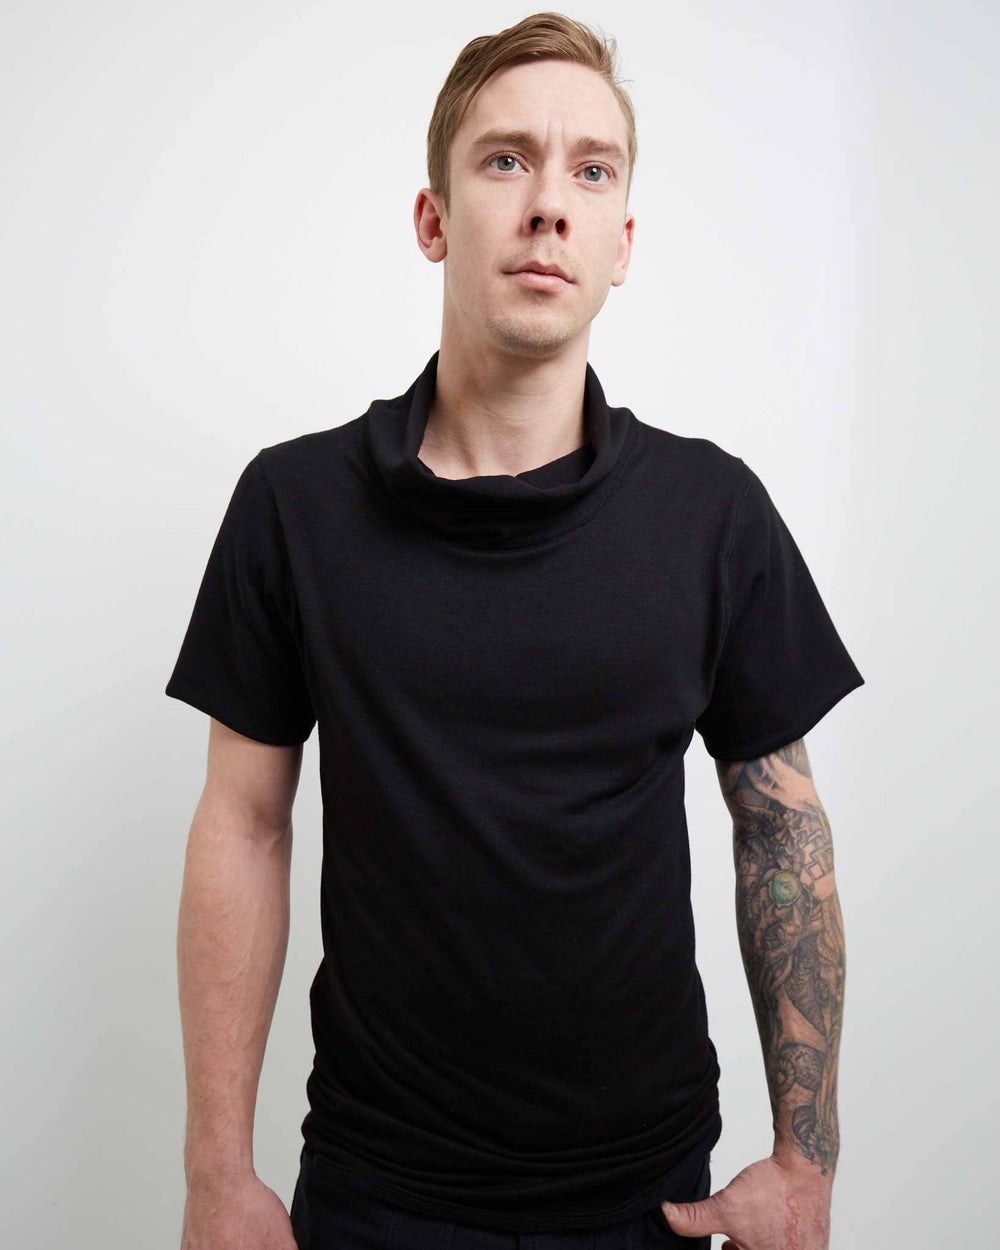 modern looking black t-shirt